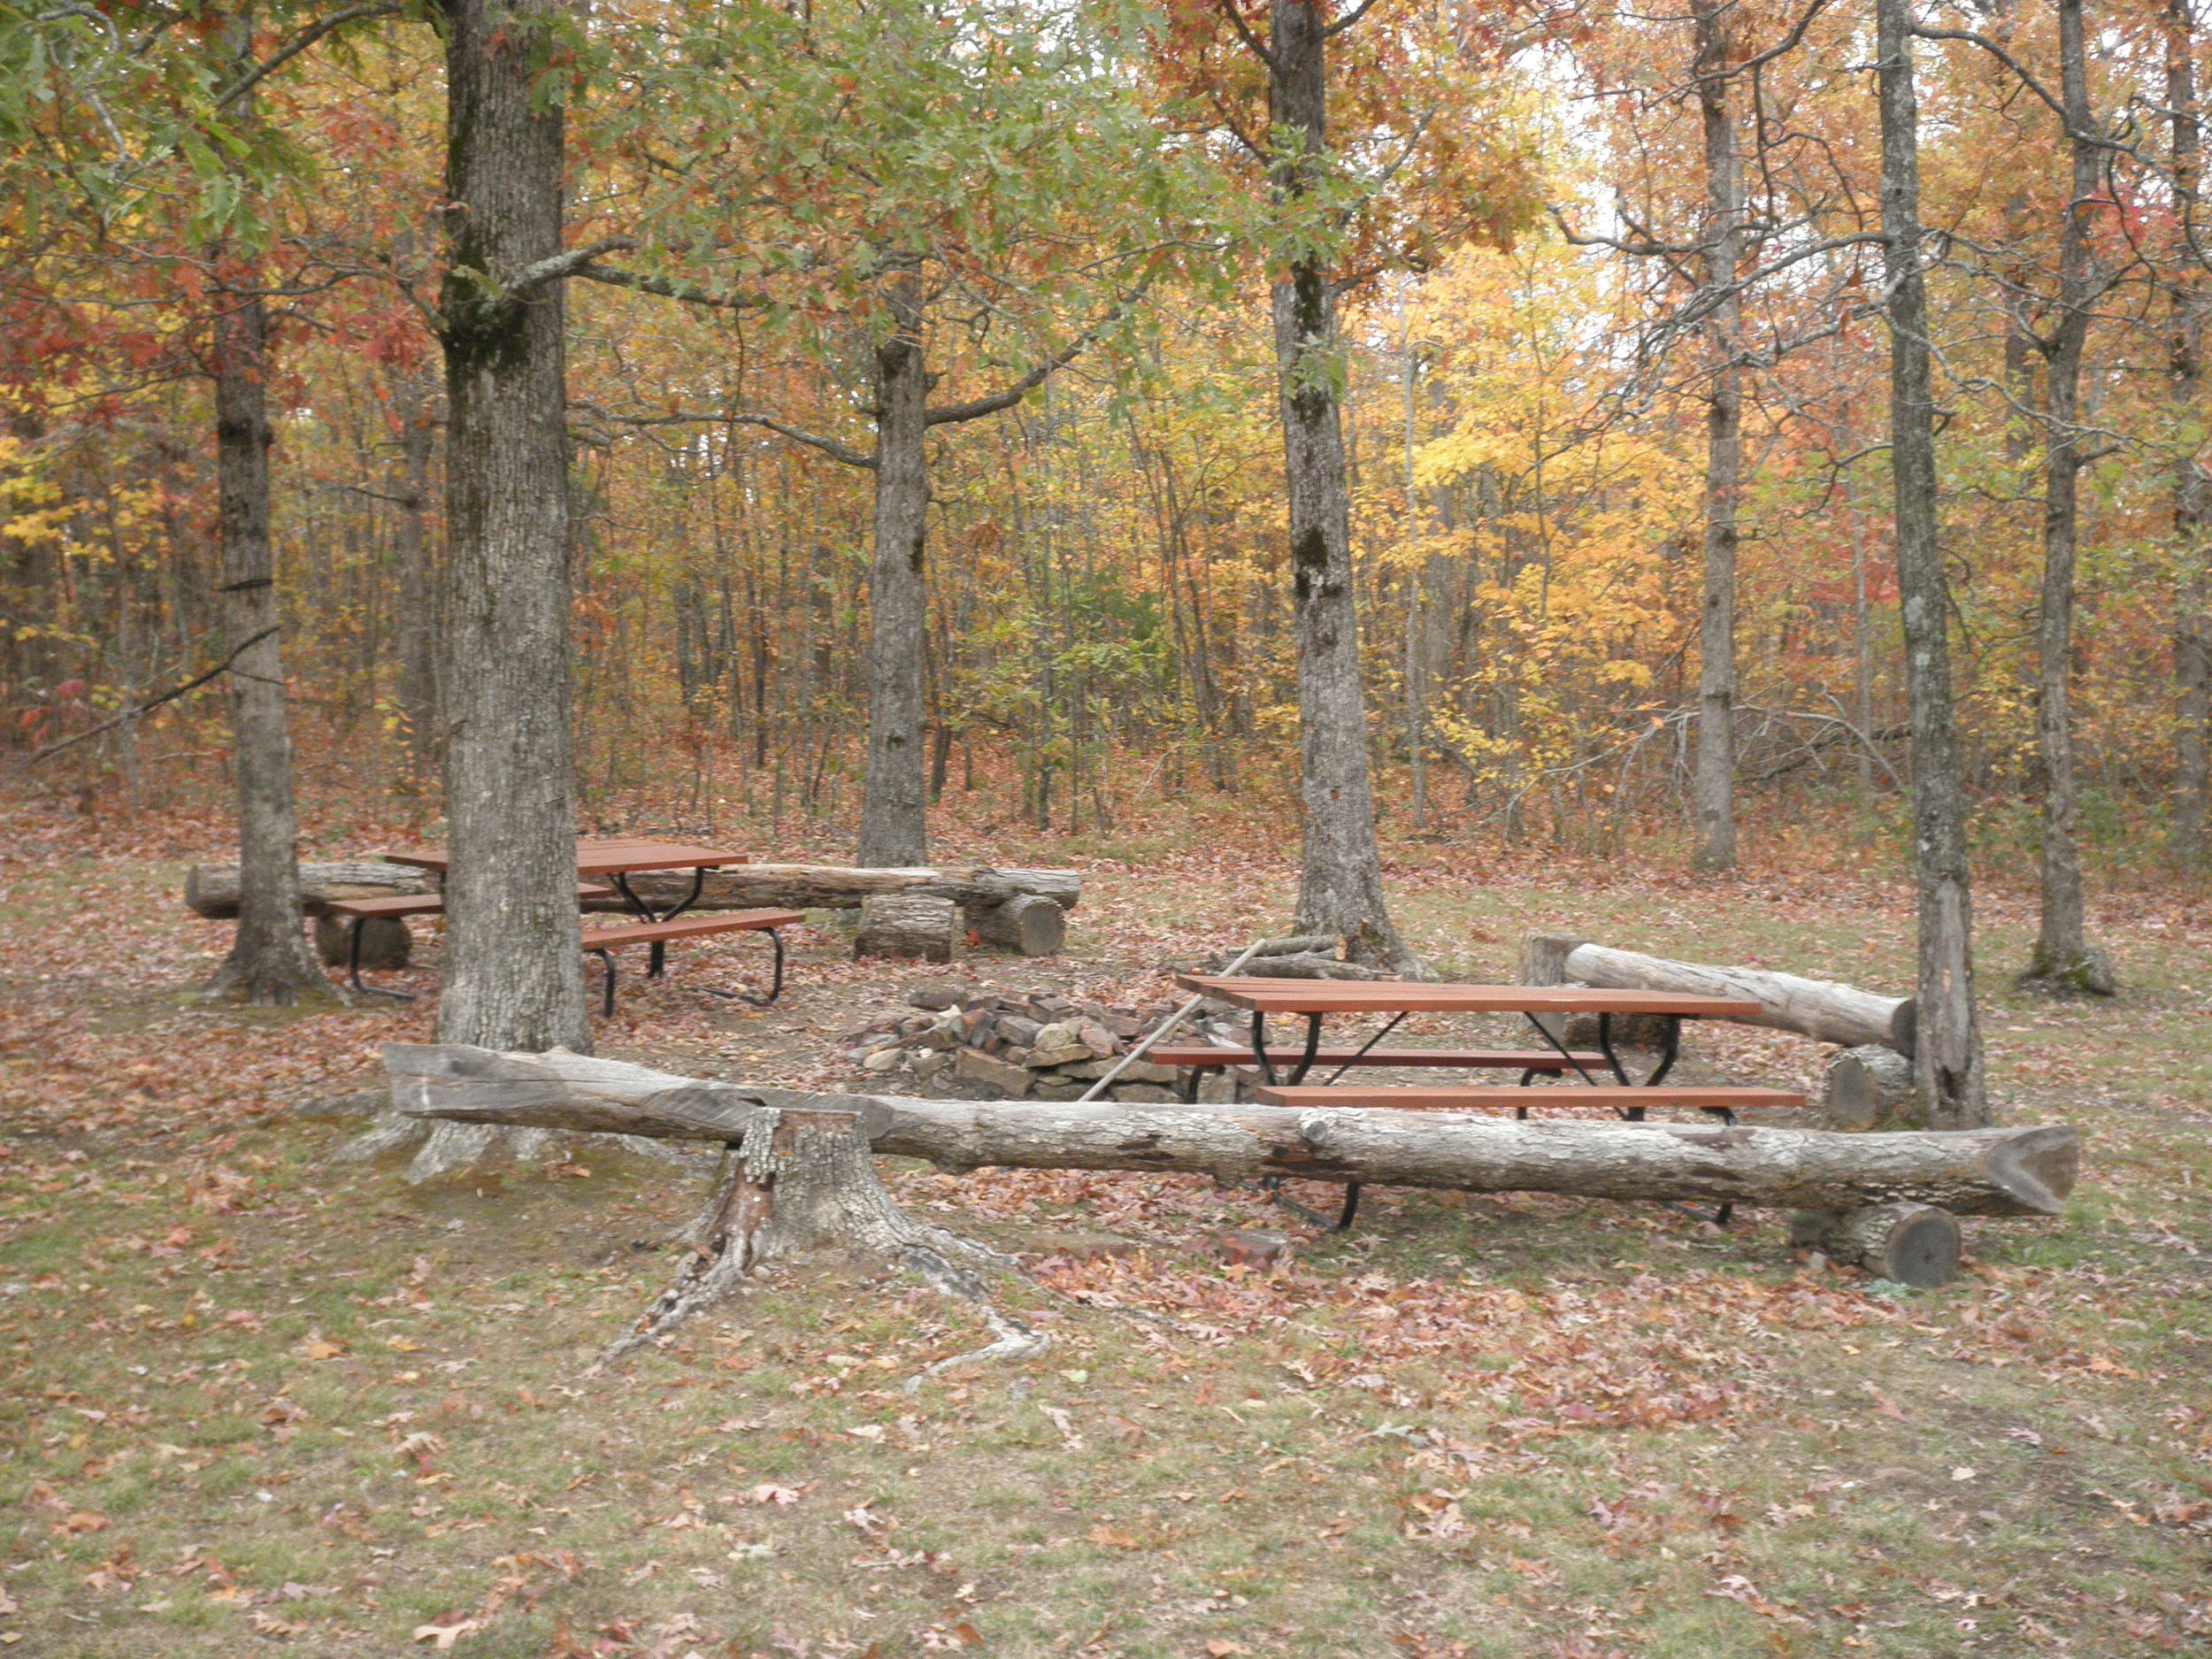 Space for everyone in the Ozarks Outdoors